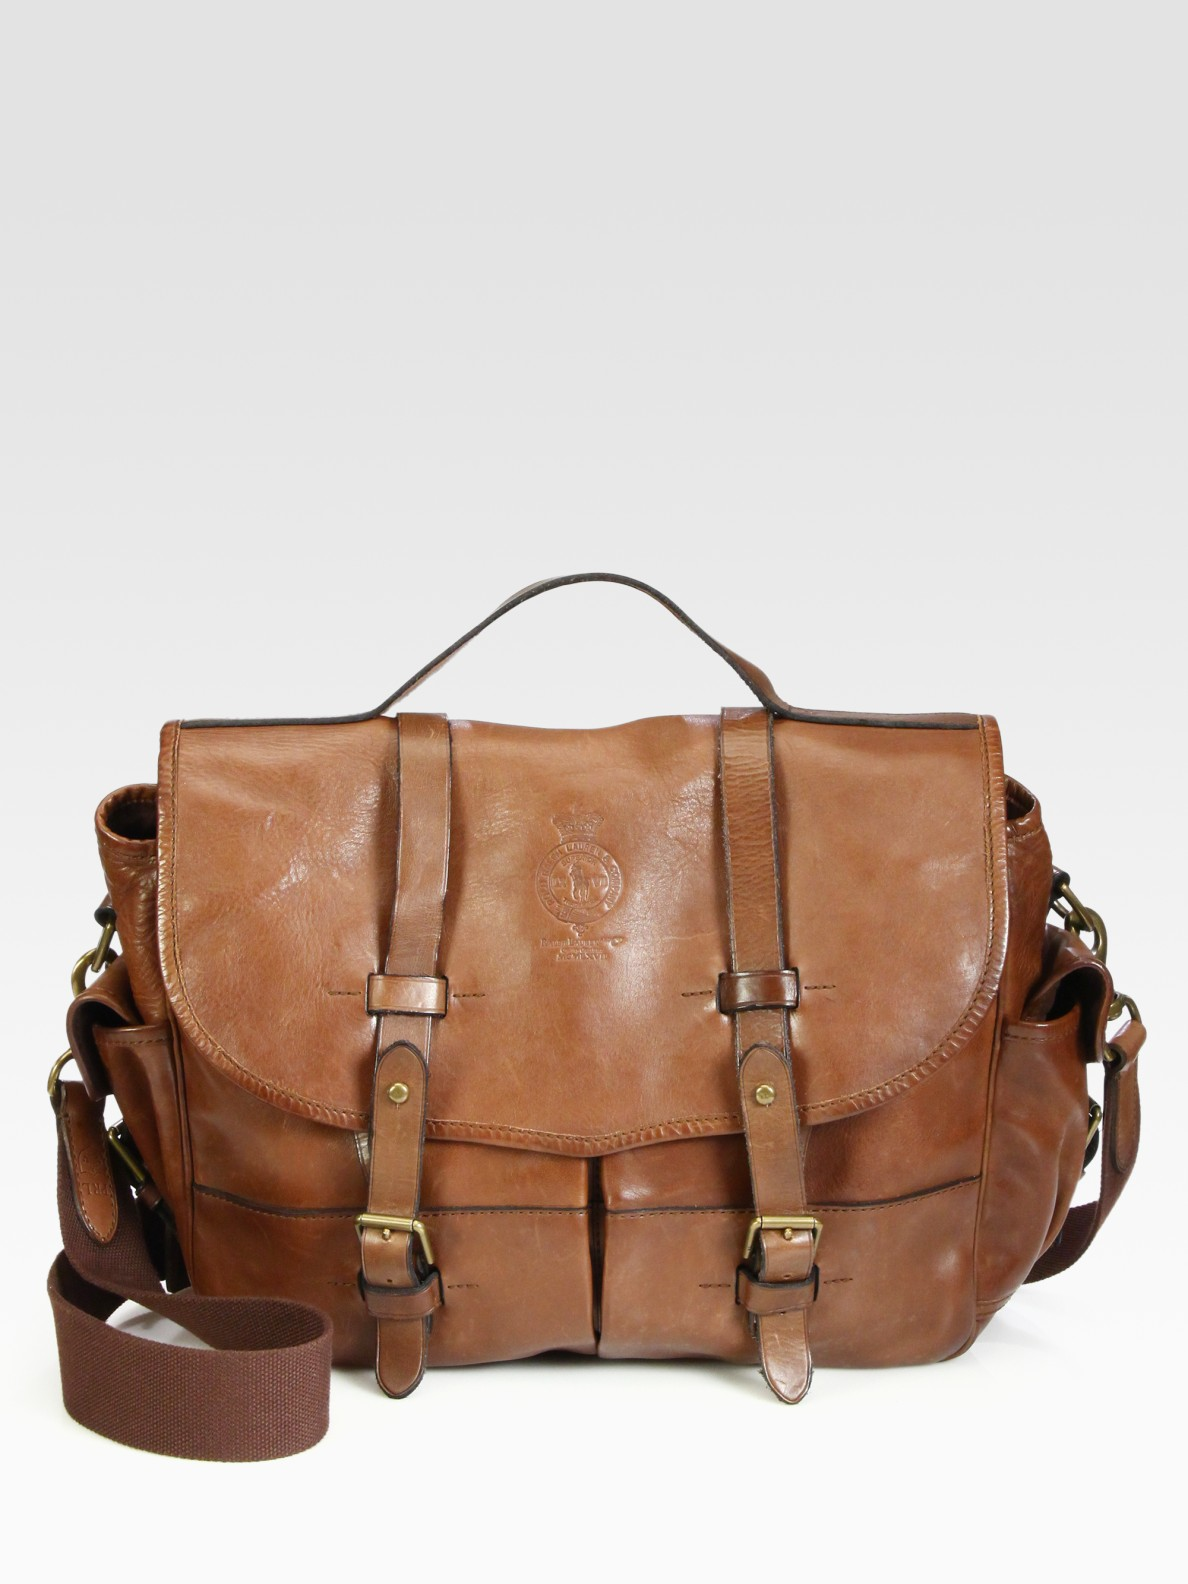 0e4cd99b36 ... sale lyst polo ralph lauren leather messenger bag in brown for men  722dc 86599